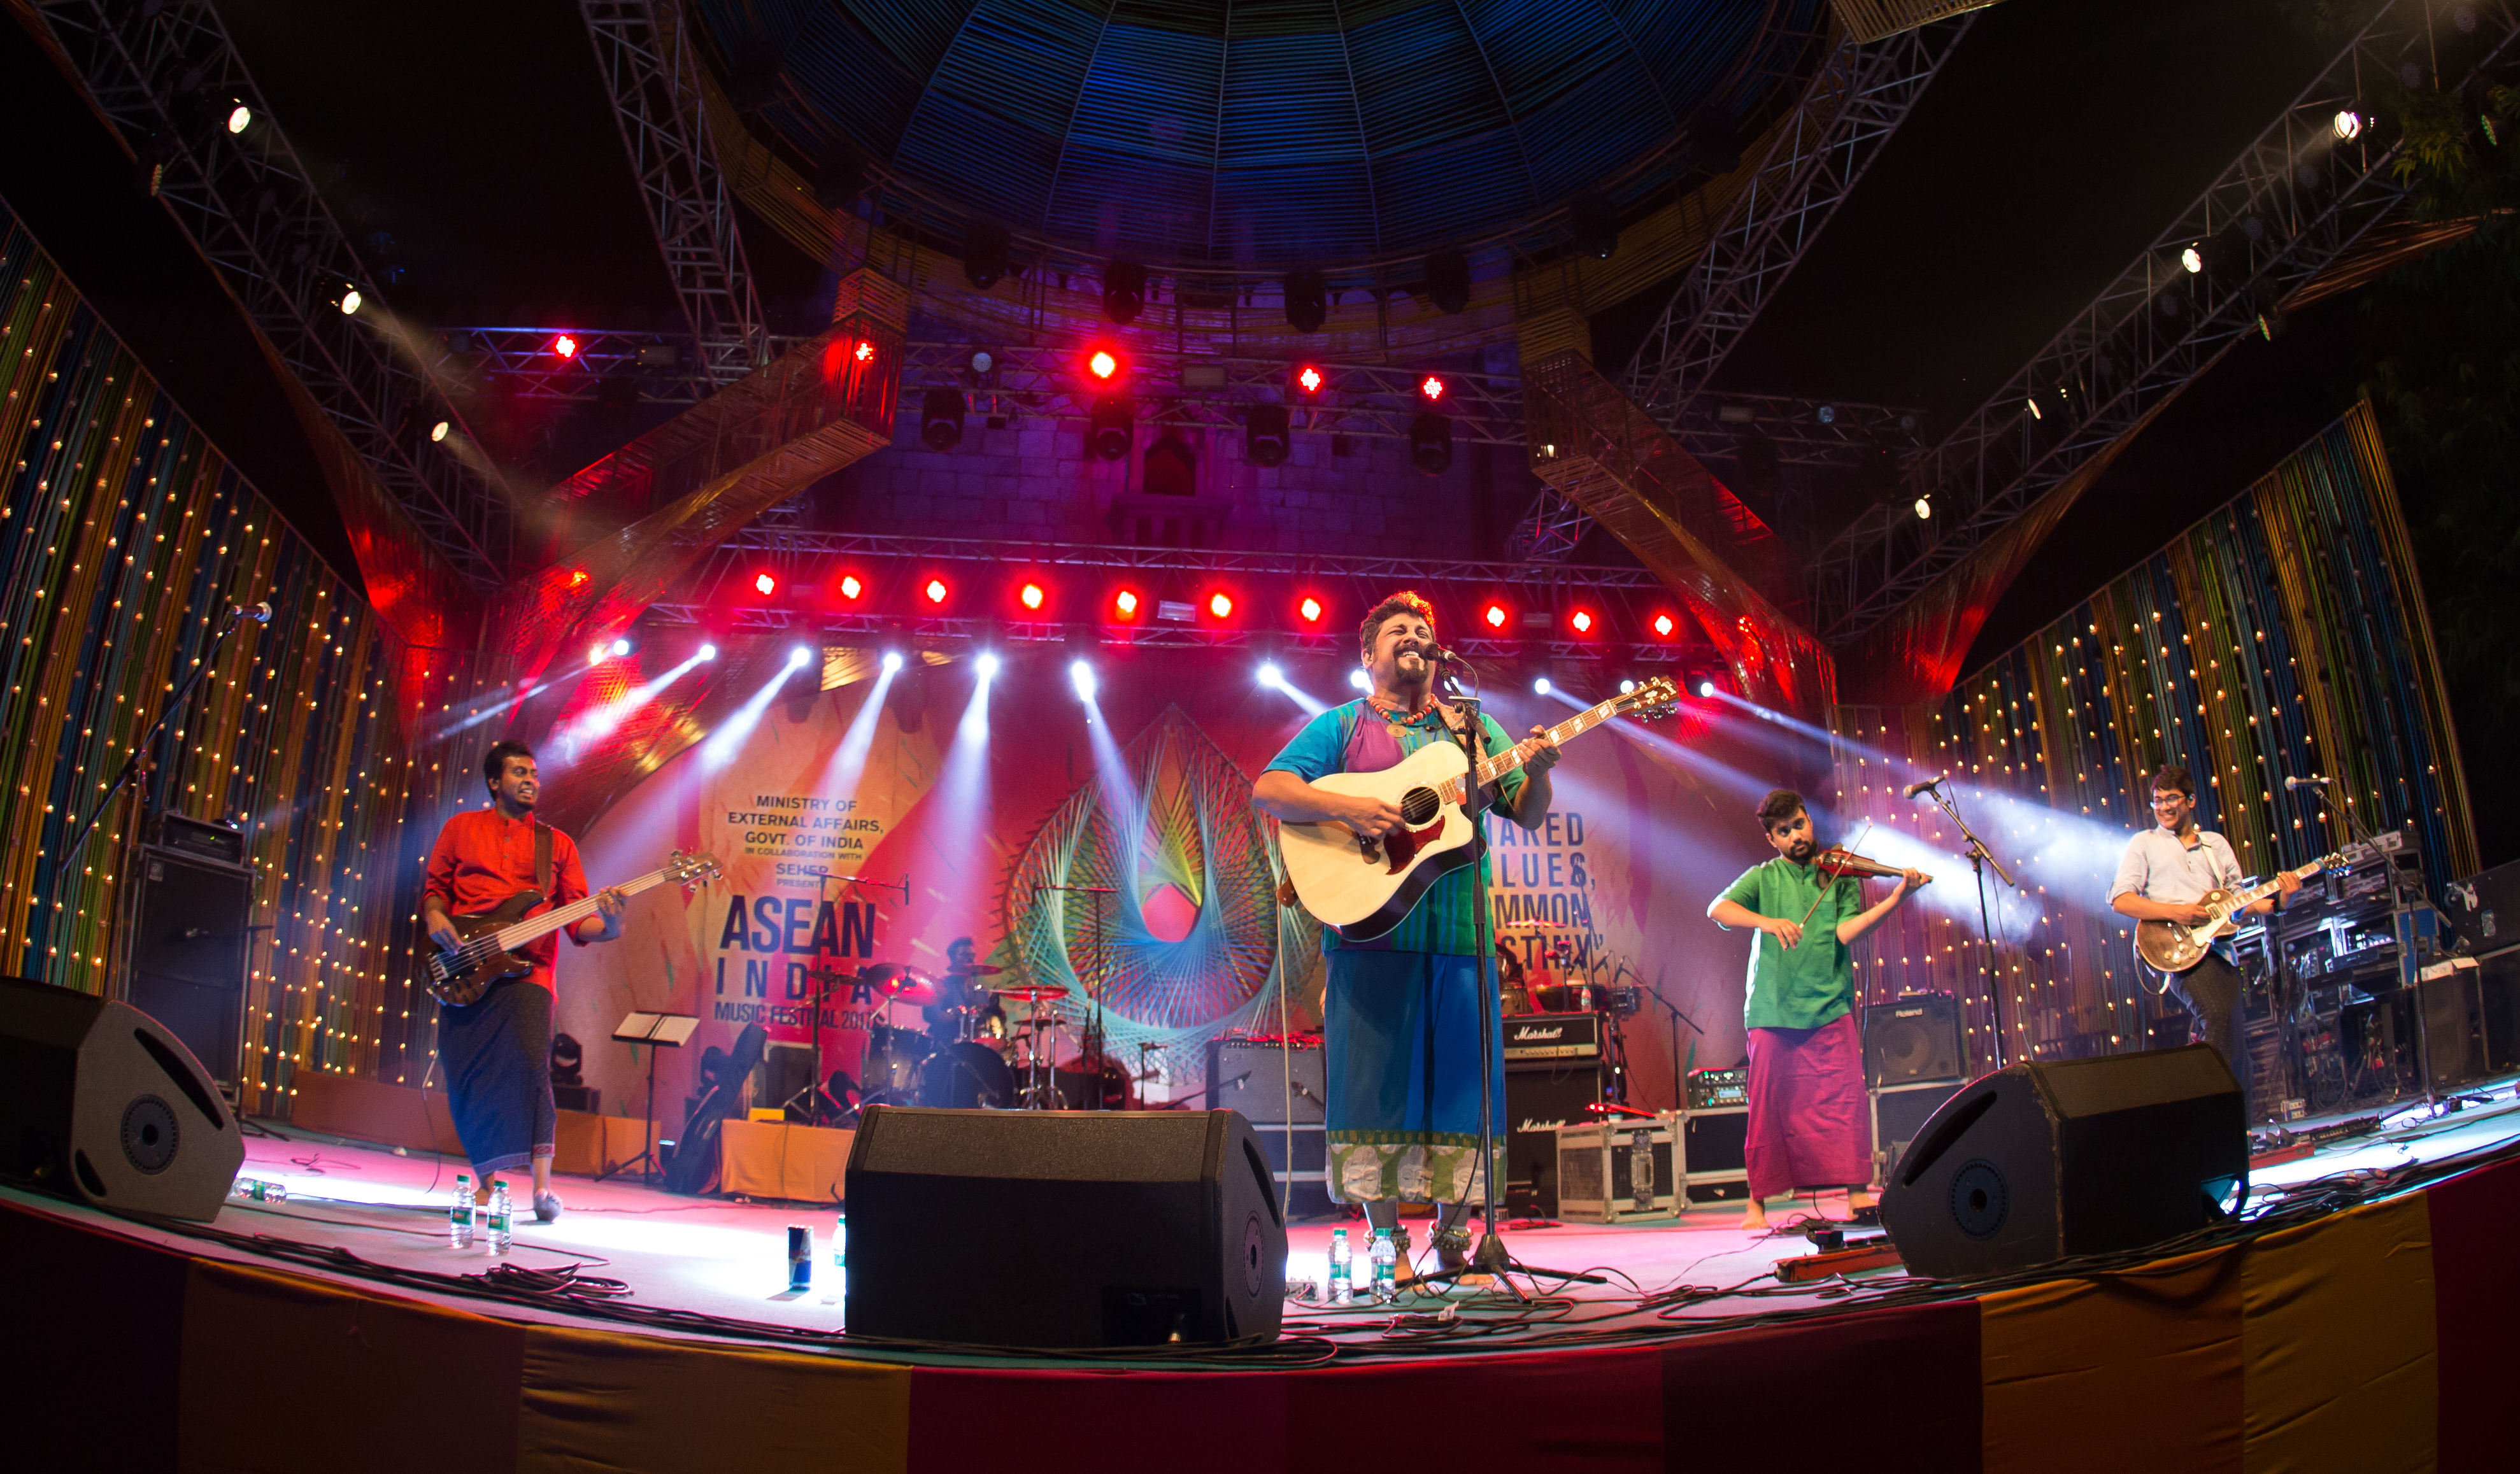 The Raghu Dixit Project, was one of the performers at the ASEAN India Music Festival 2017 in the Indian capital of New Delhi